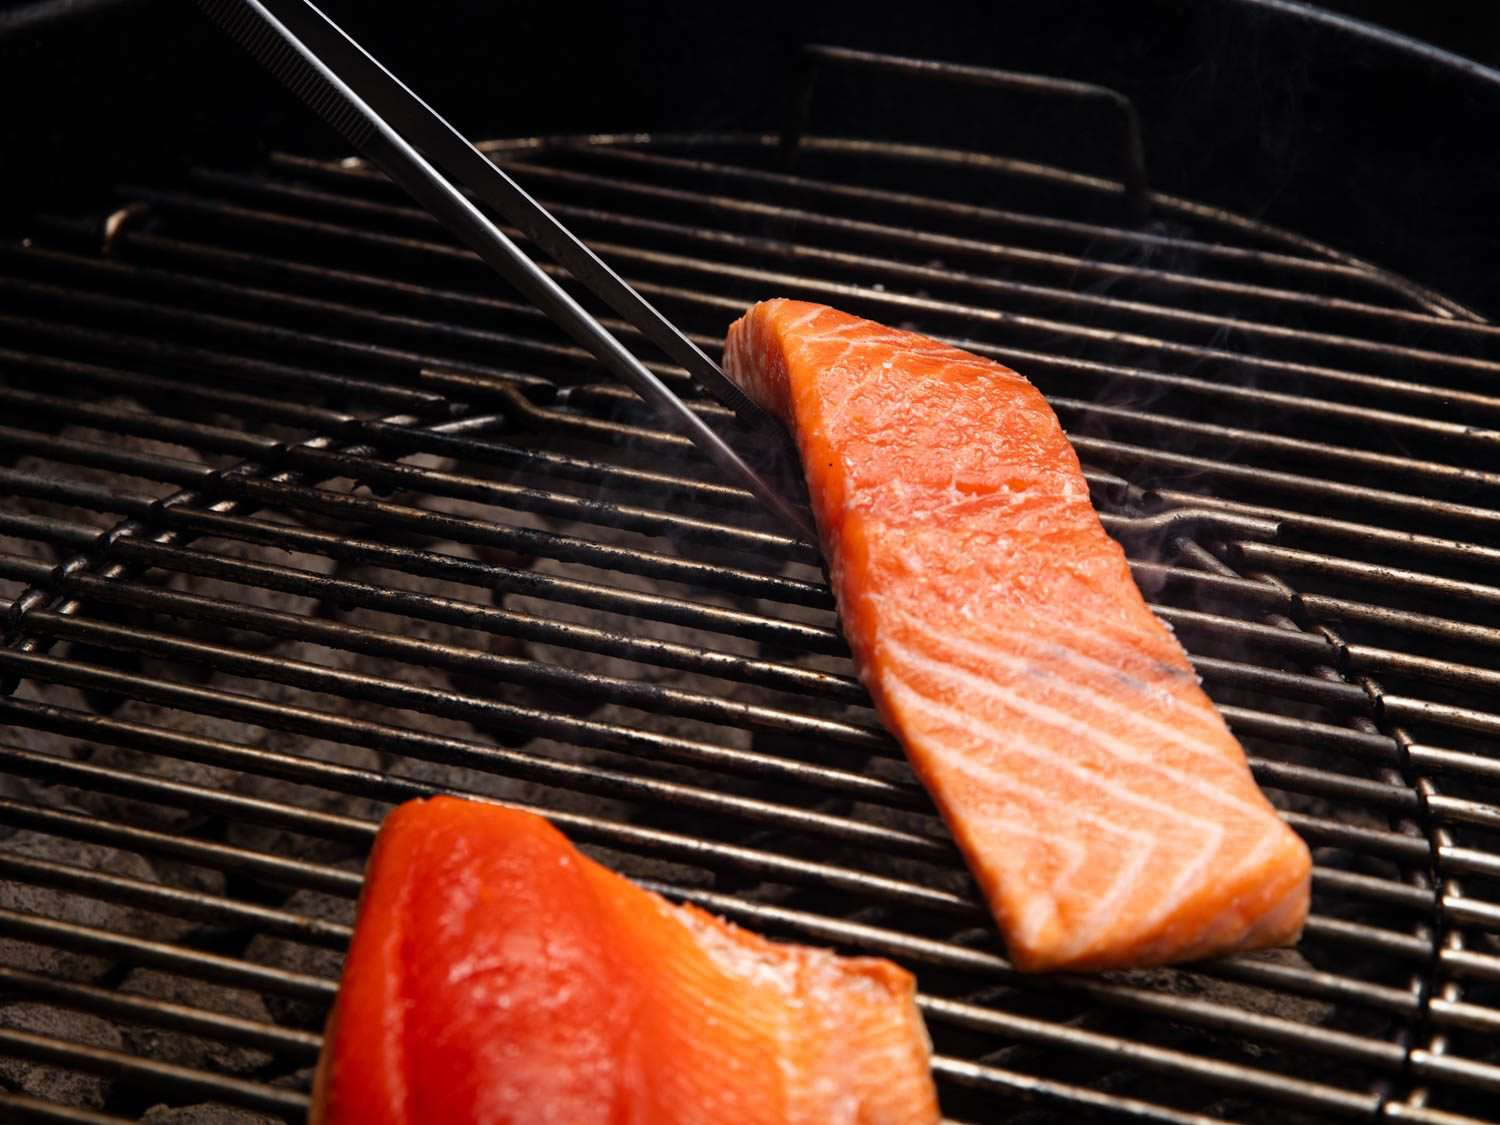 Using the thin prongs of culinary tweezers to lift a piece of salmon from below to turn it on the grill.